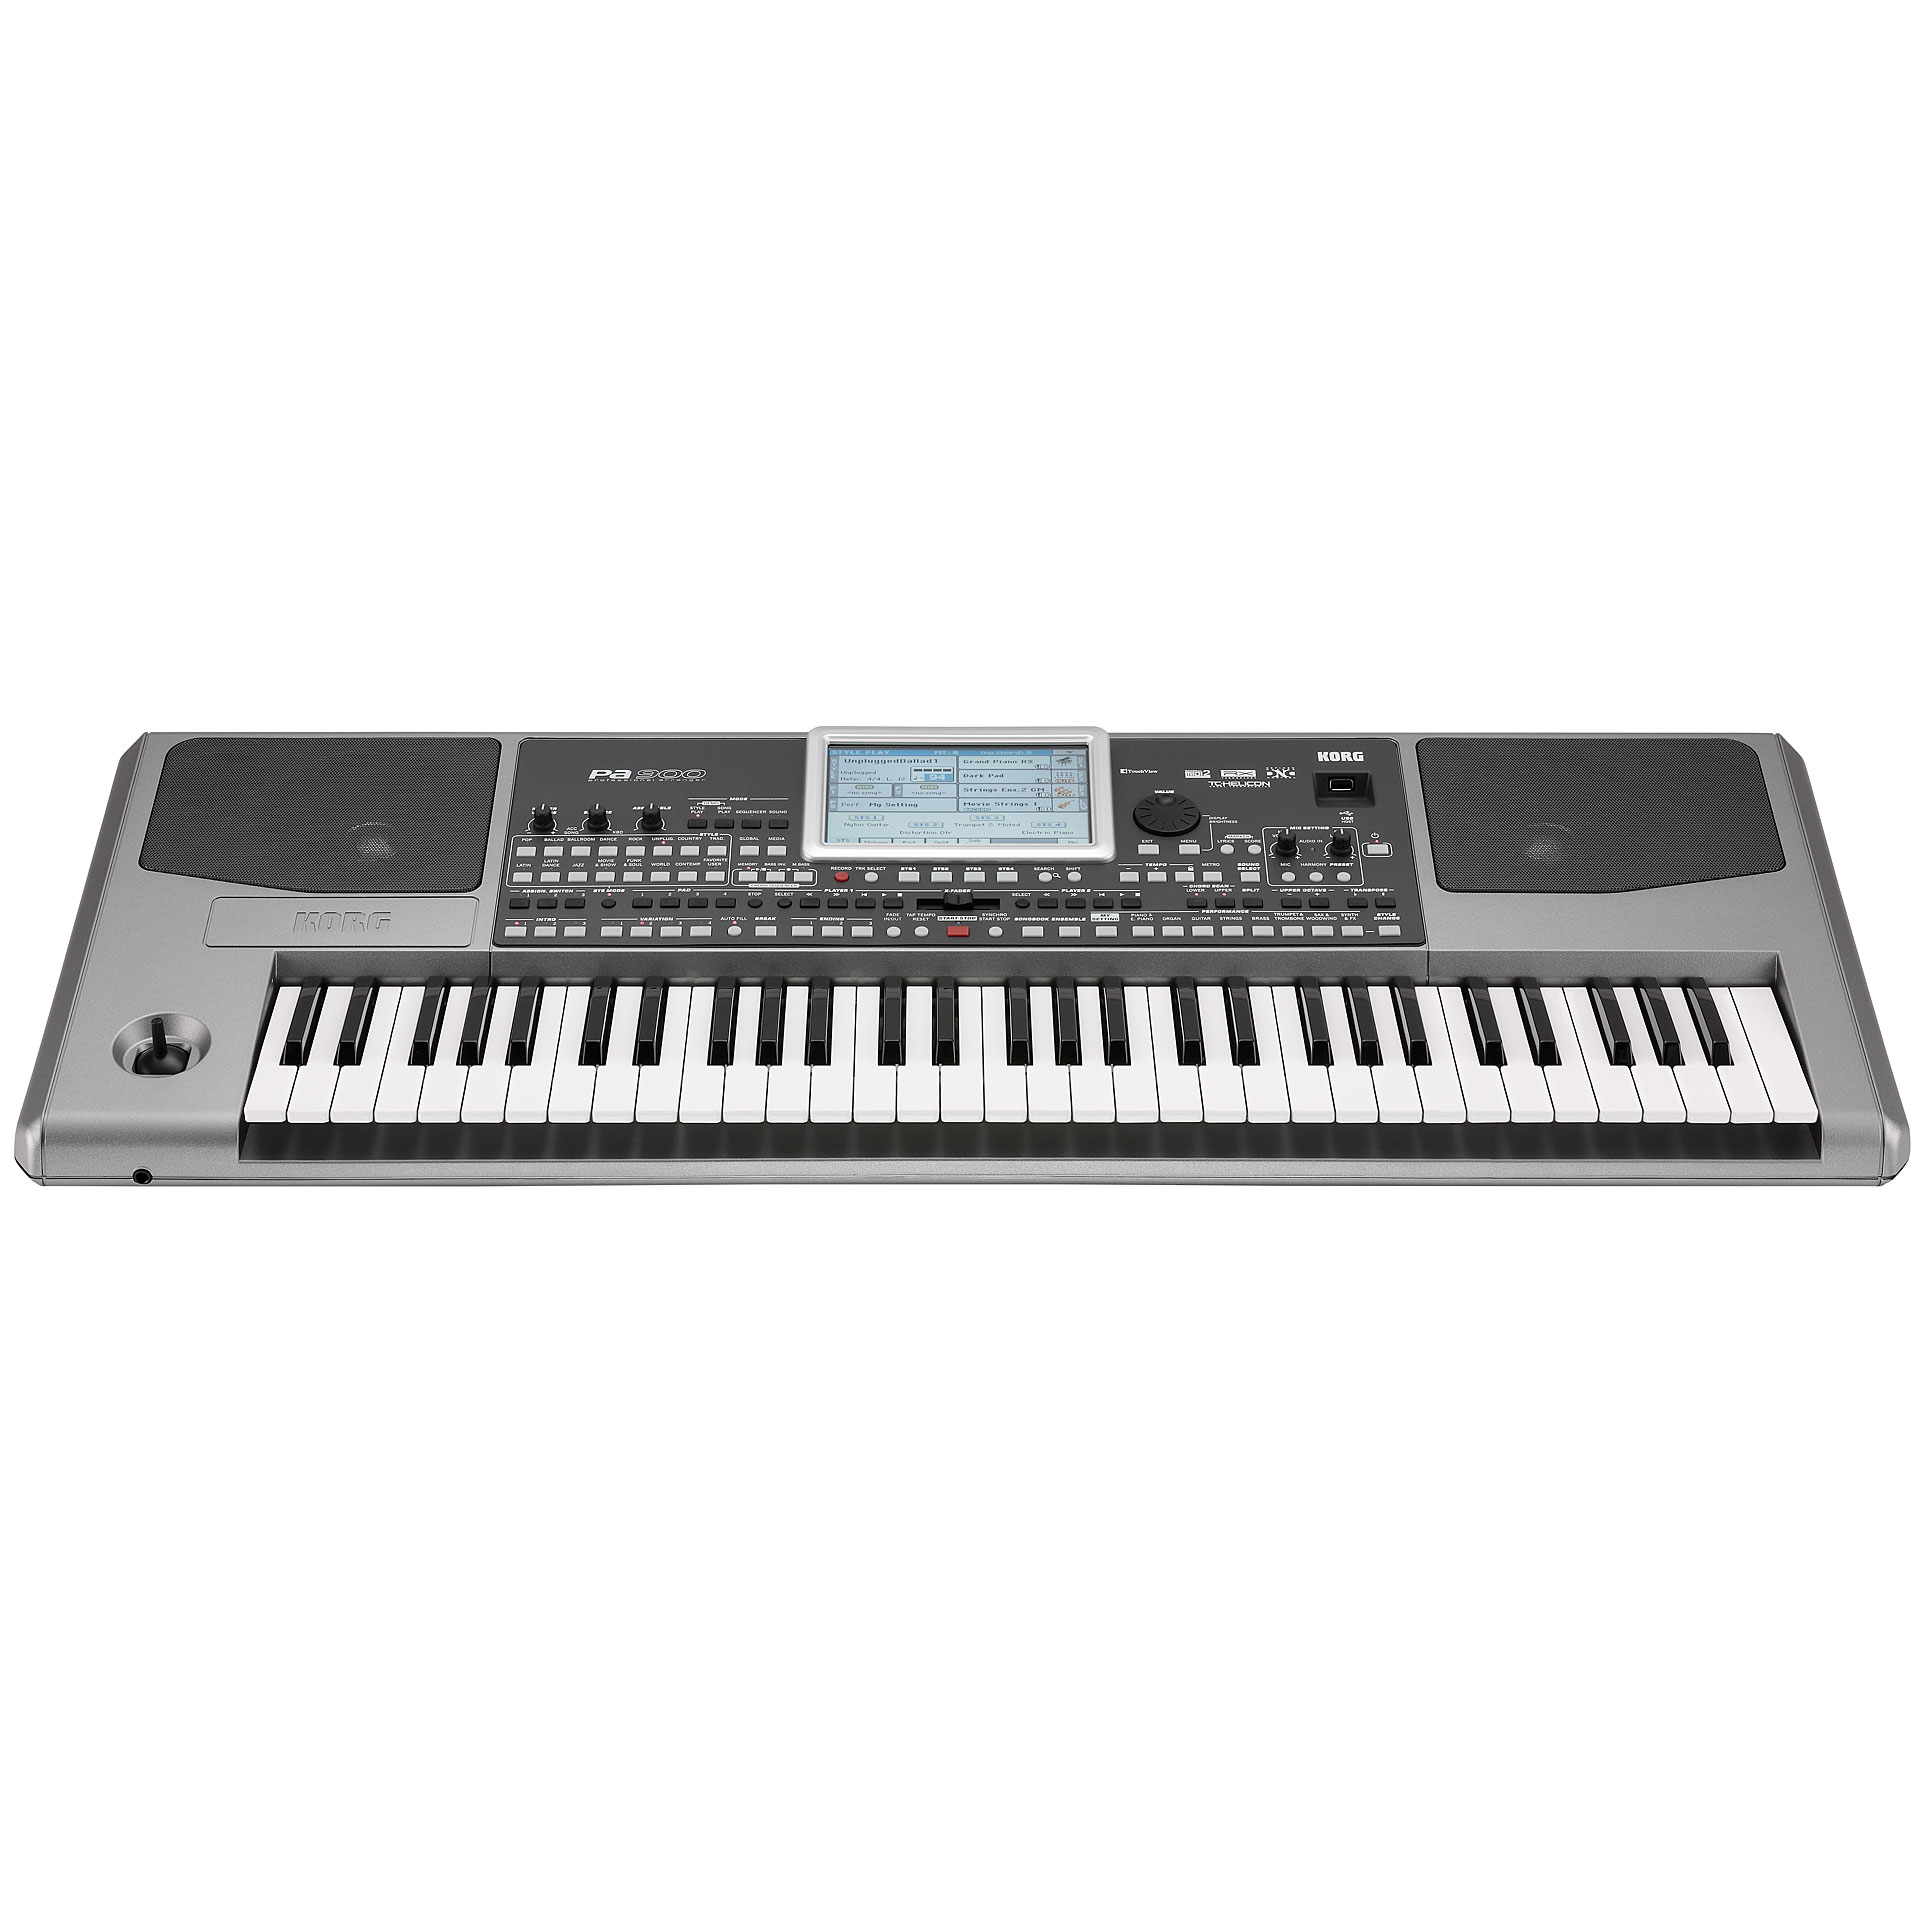 korg pa900 keyboard. Black Bedroom Furniture Sets. Home Design Ideas